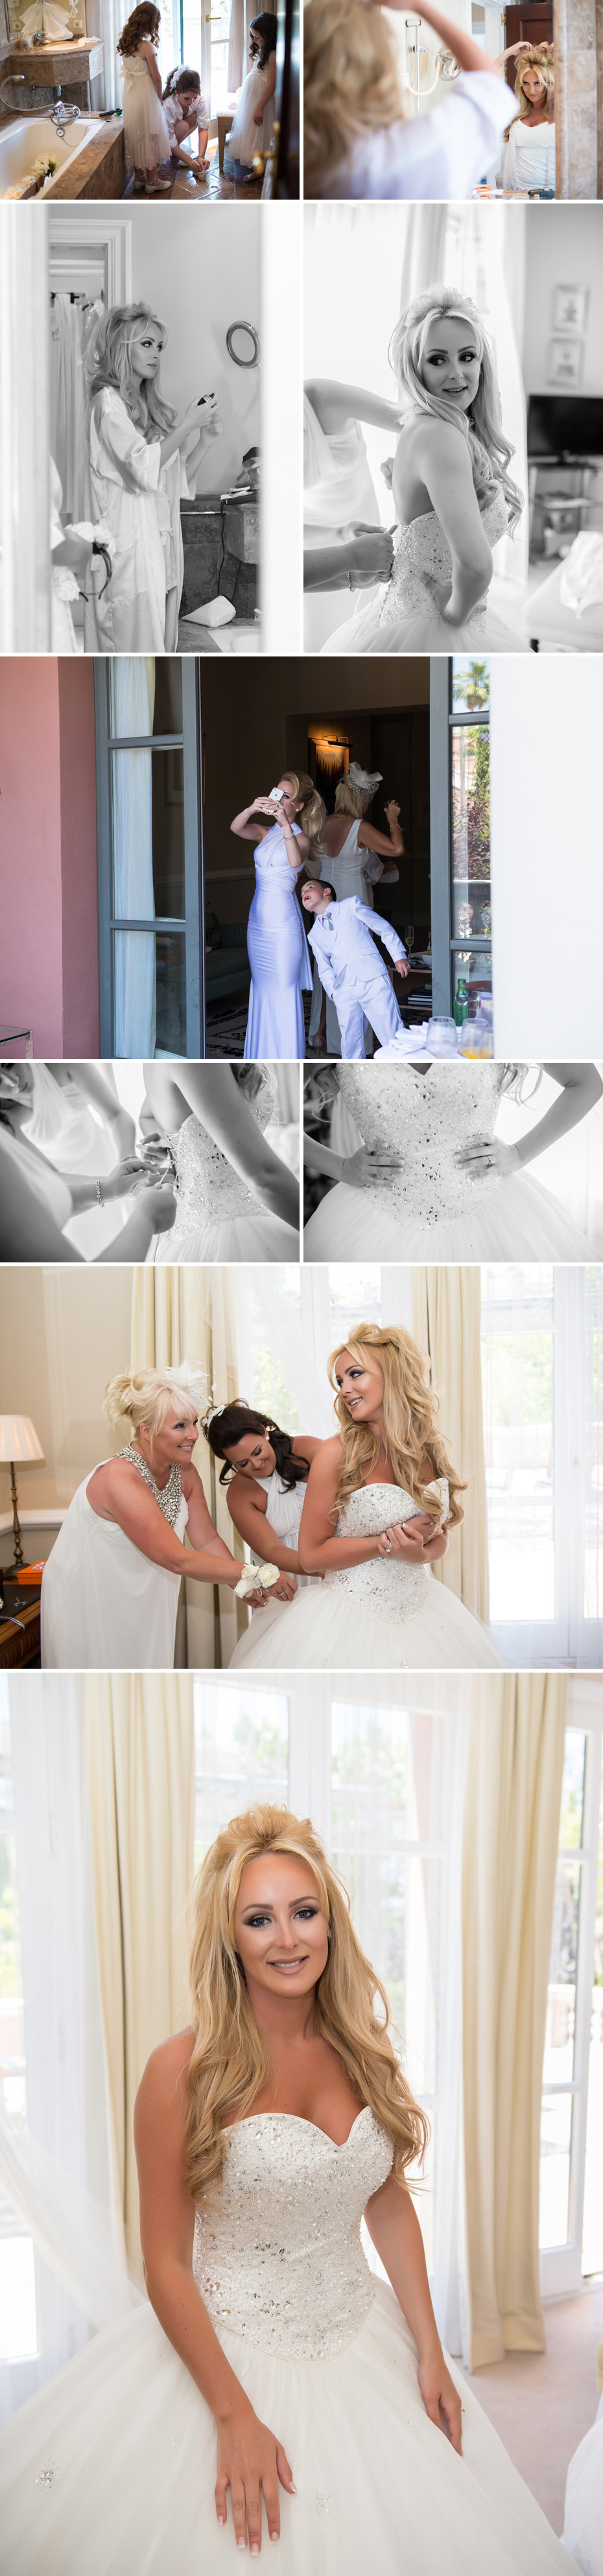 bride-preparations-villa-padierna-wedding-photos